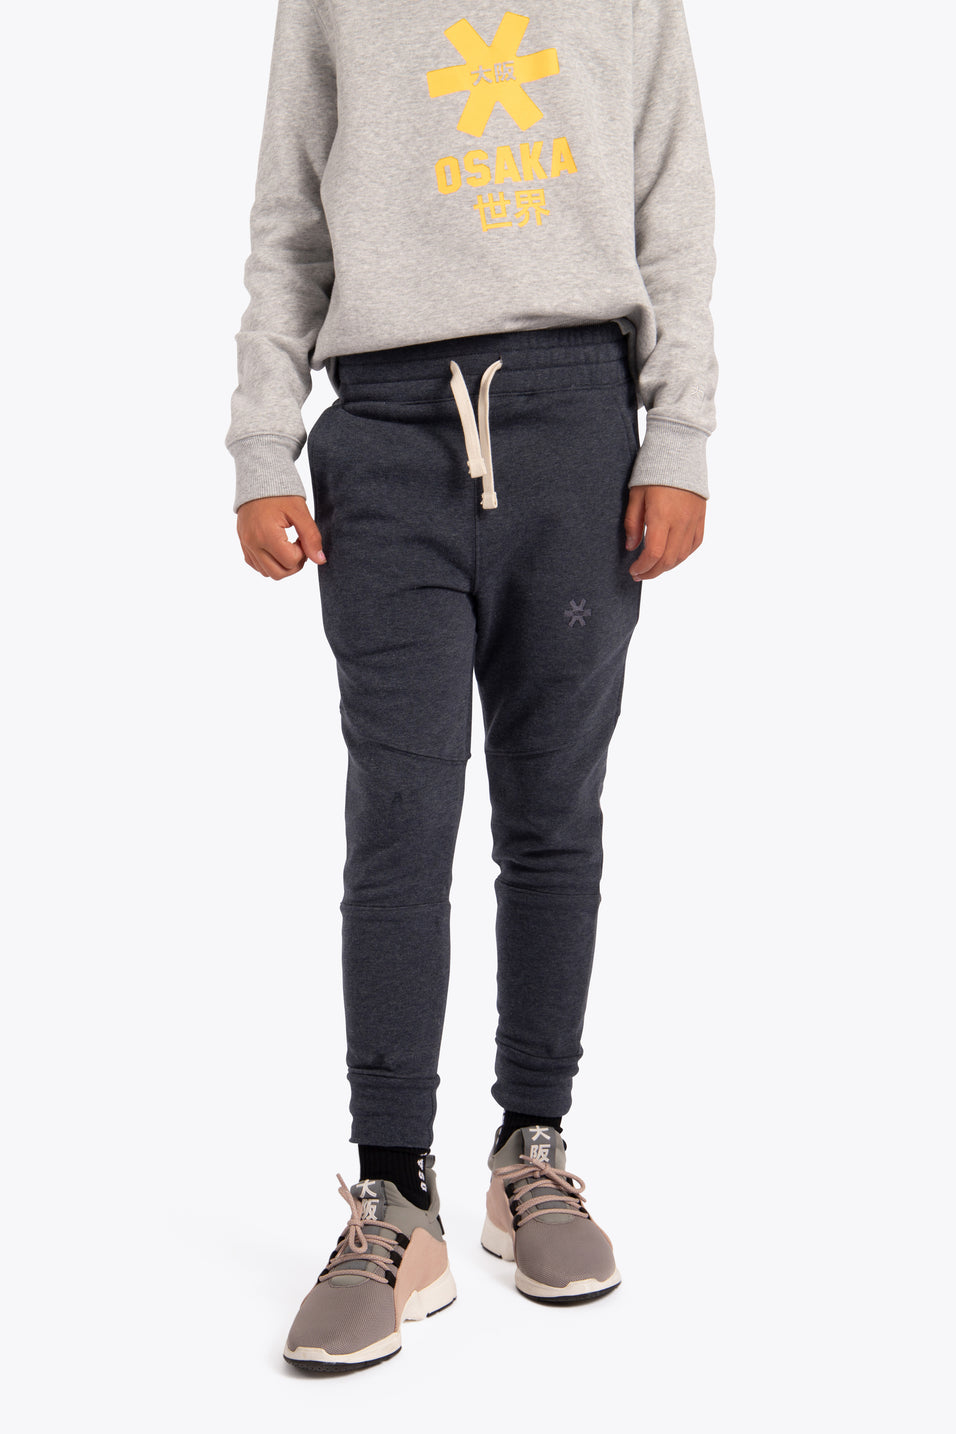 Deshi Sweatpants - Navy Melange